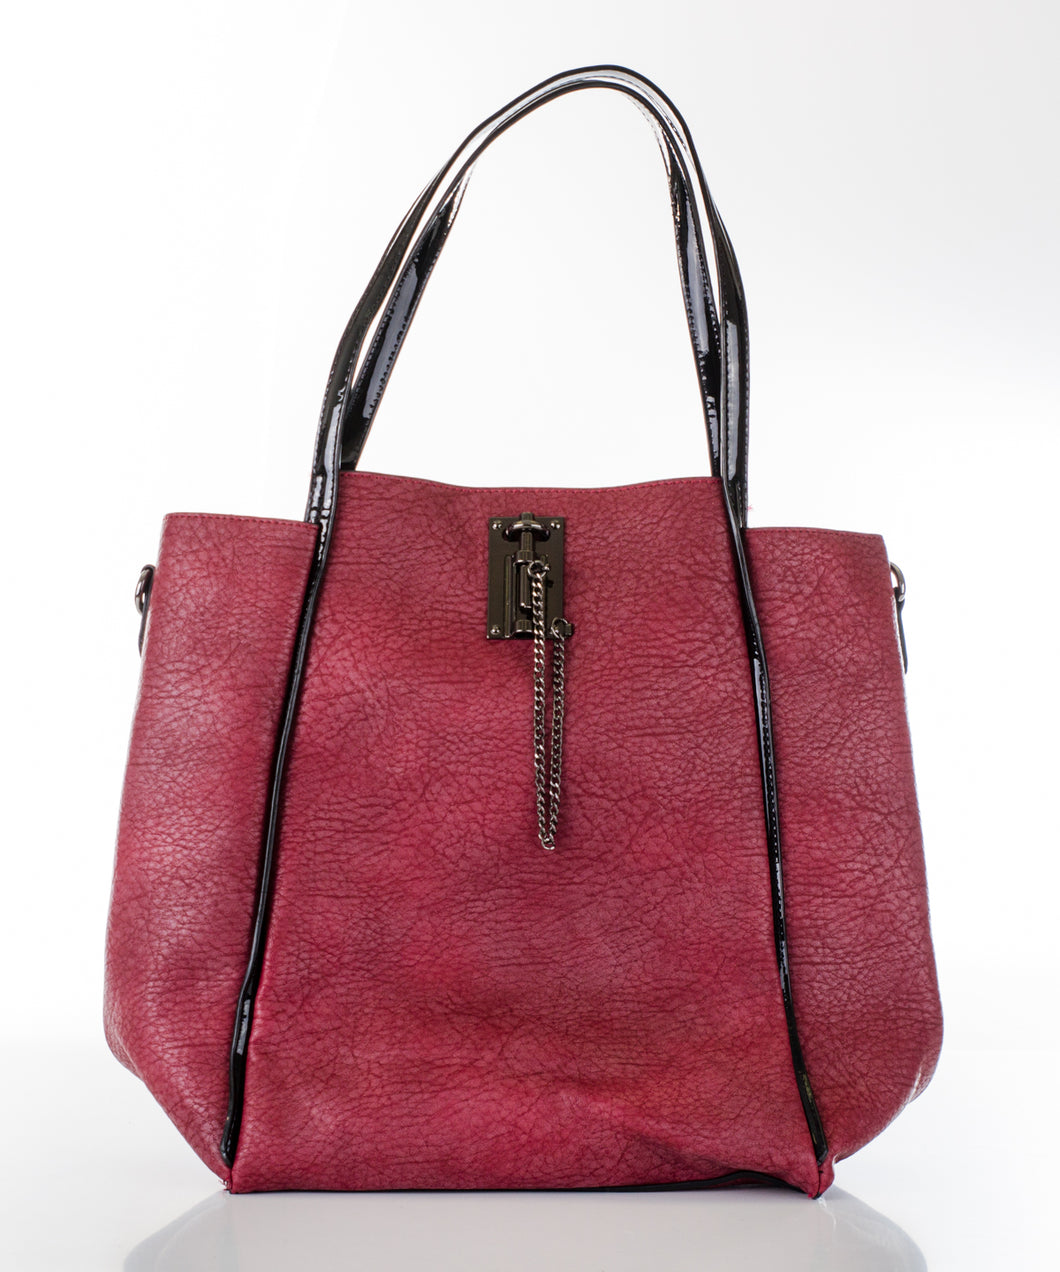 Sweetgum Grace Handbag in Red Wine